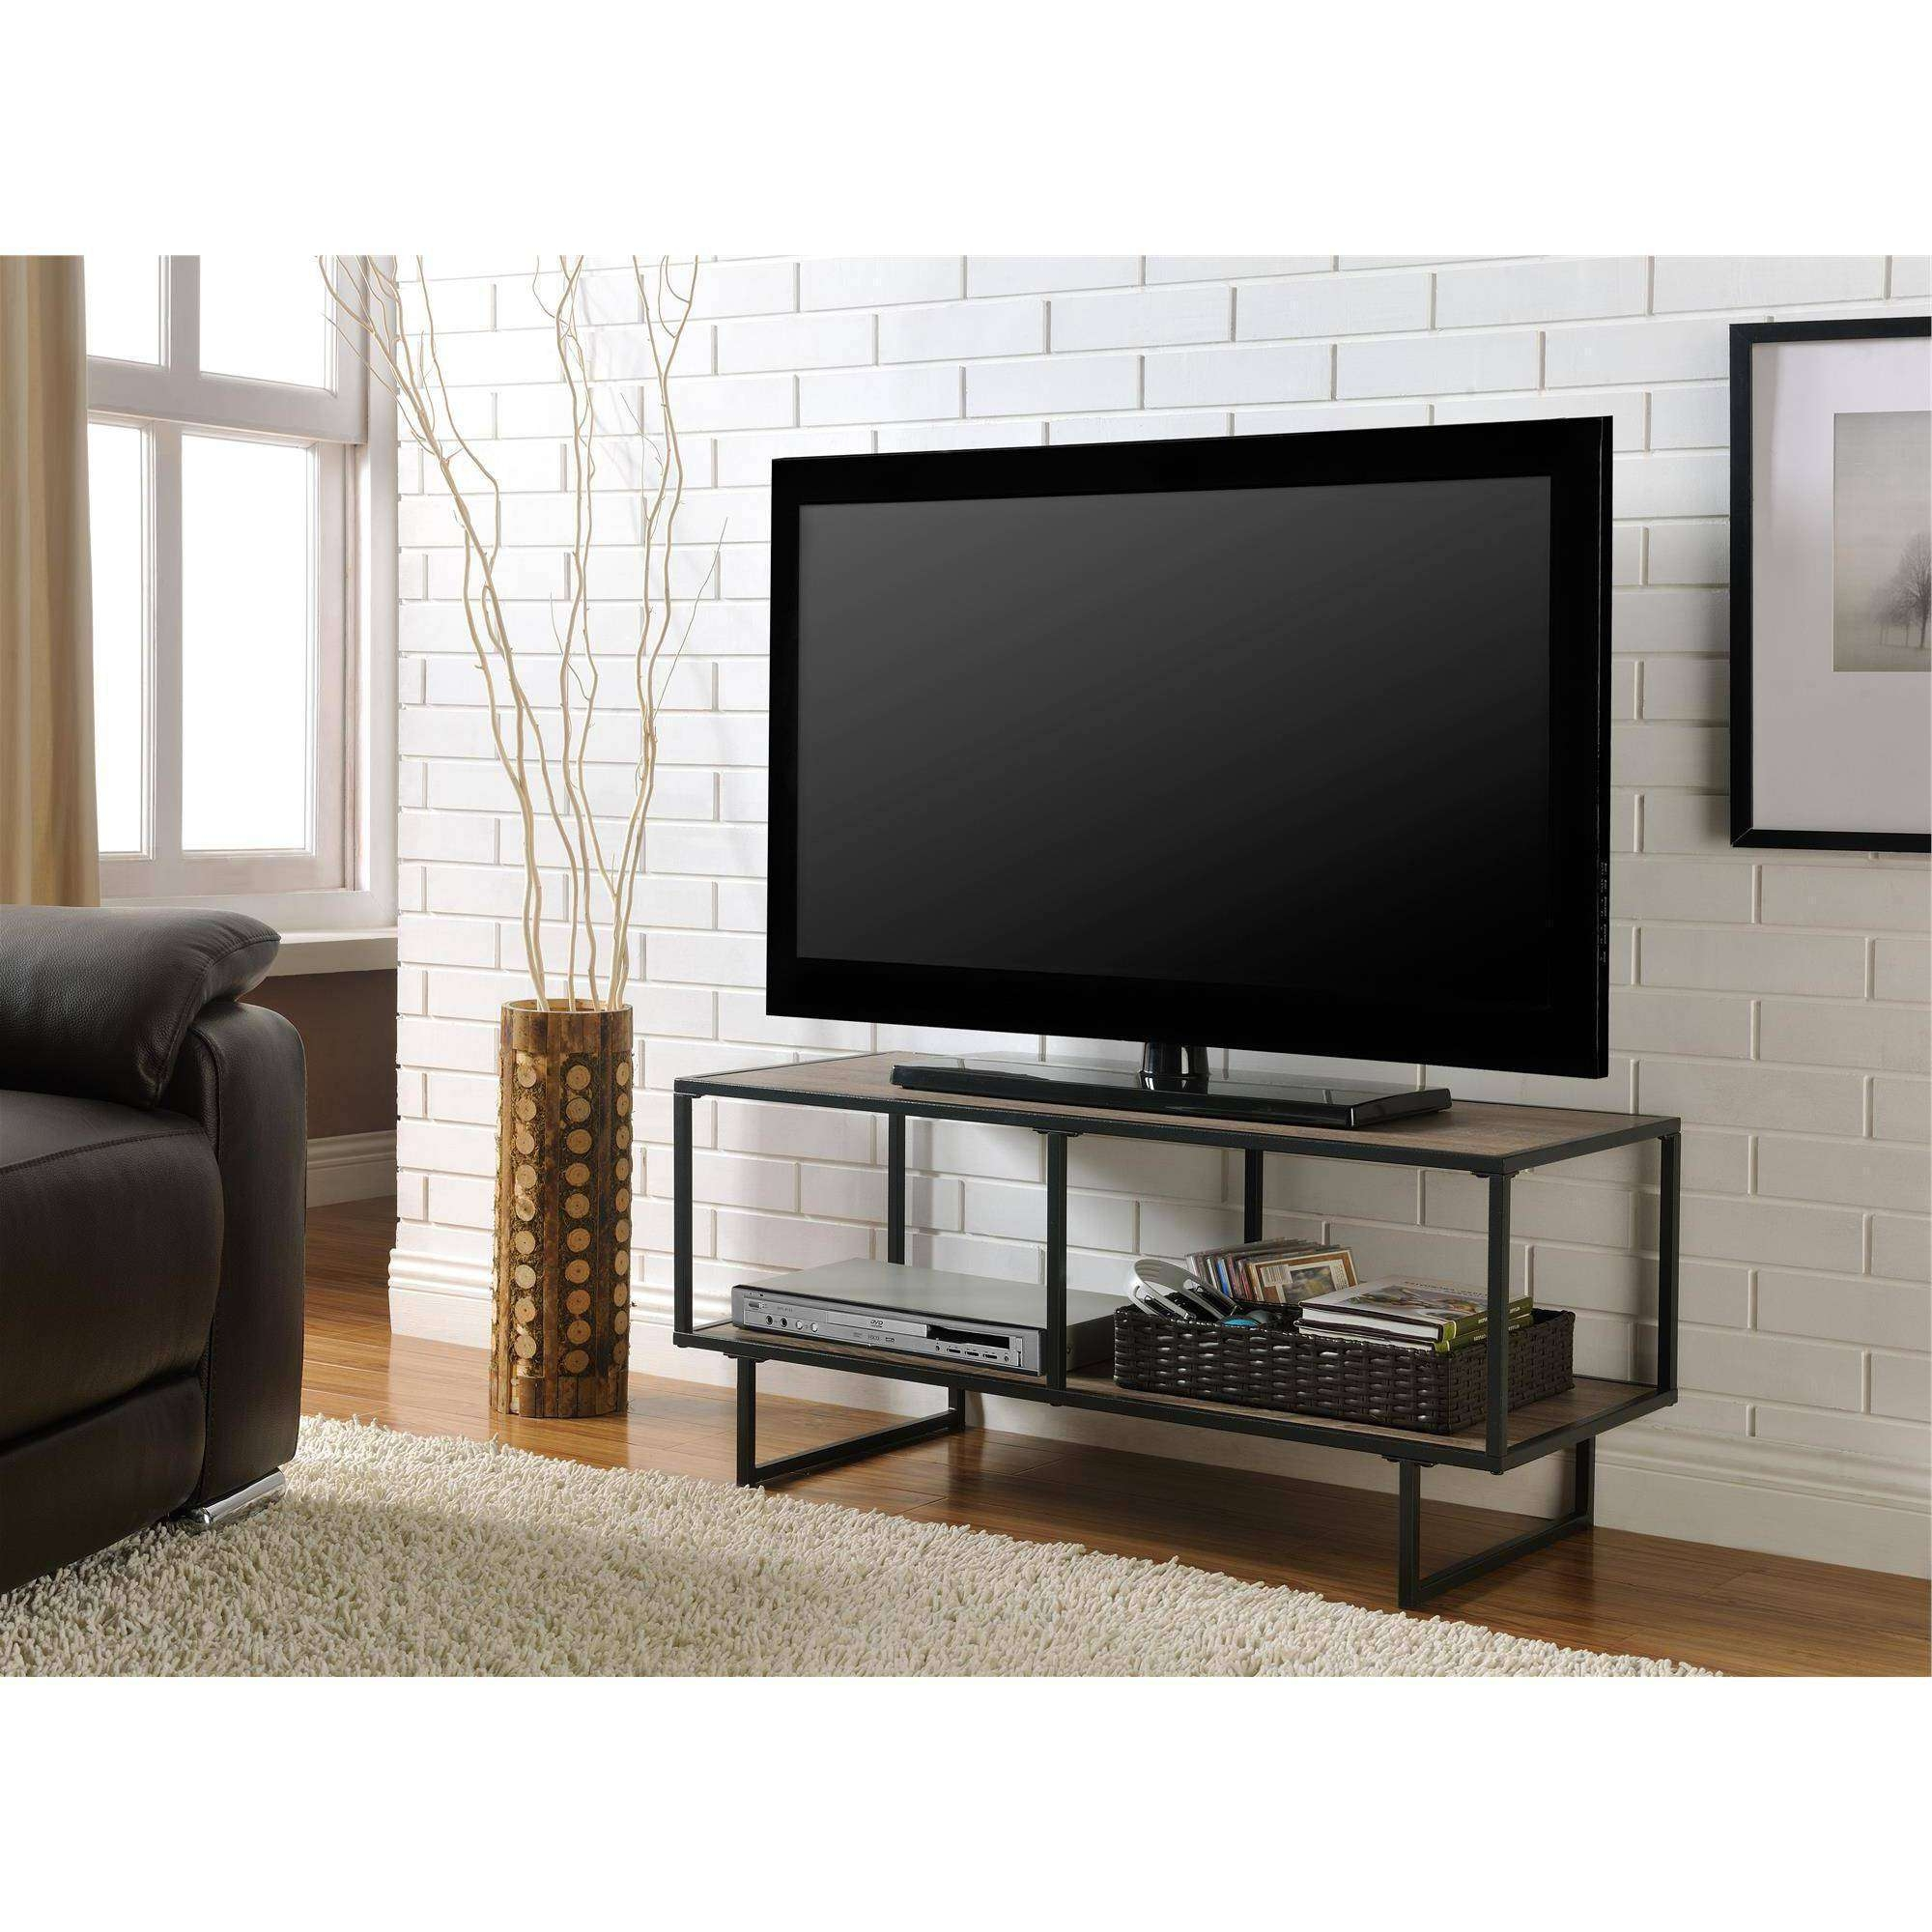 Altra Furniture Emmett 1 Shelf Tv Stand Coffee Table In Sonoma Oak Intended For Industrial Tv Cabinets (View 1 of 20)